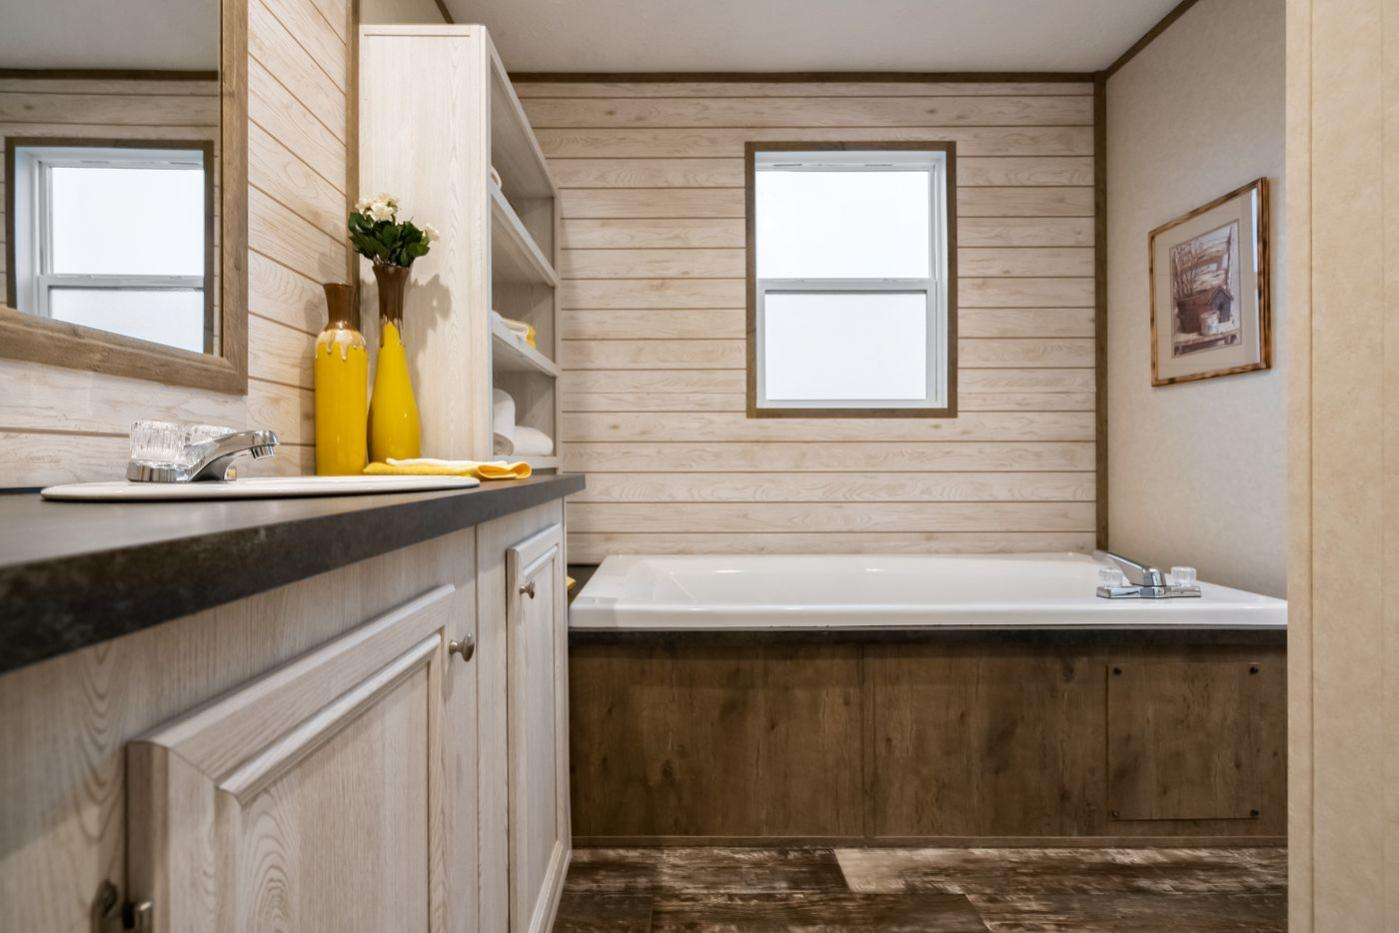 Bathroom in the Edge Manufactured Home from Worldwide Mobile Homes in Lumberton, Texas